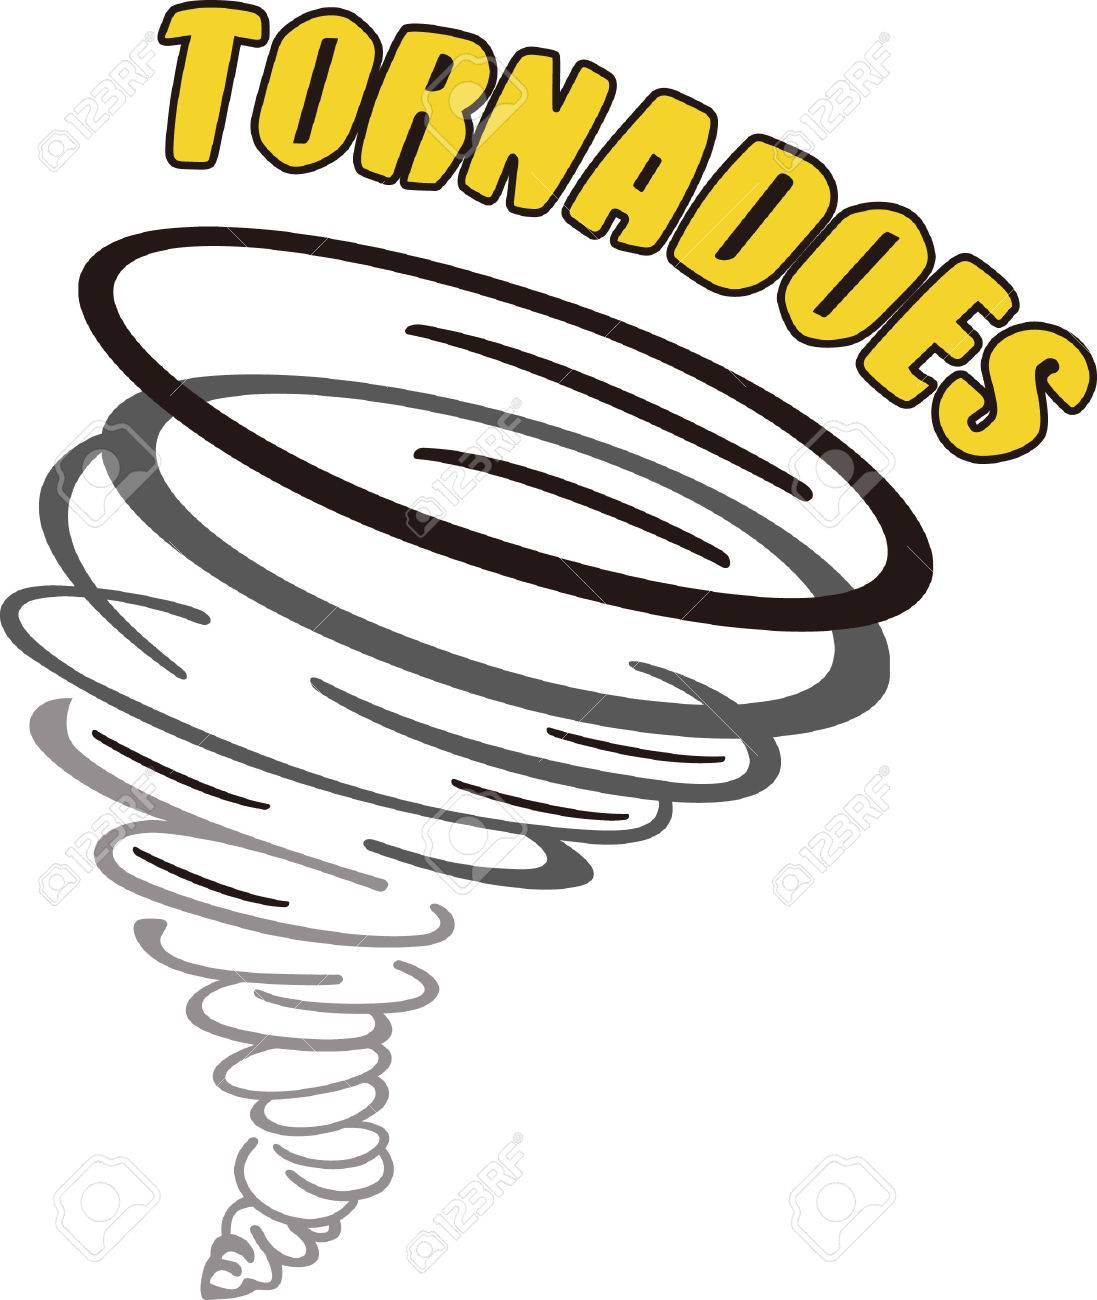 show your team spirit with this tornado logo everyone will